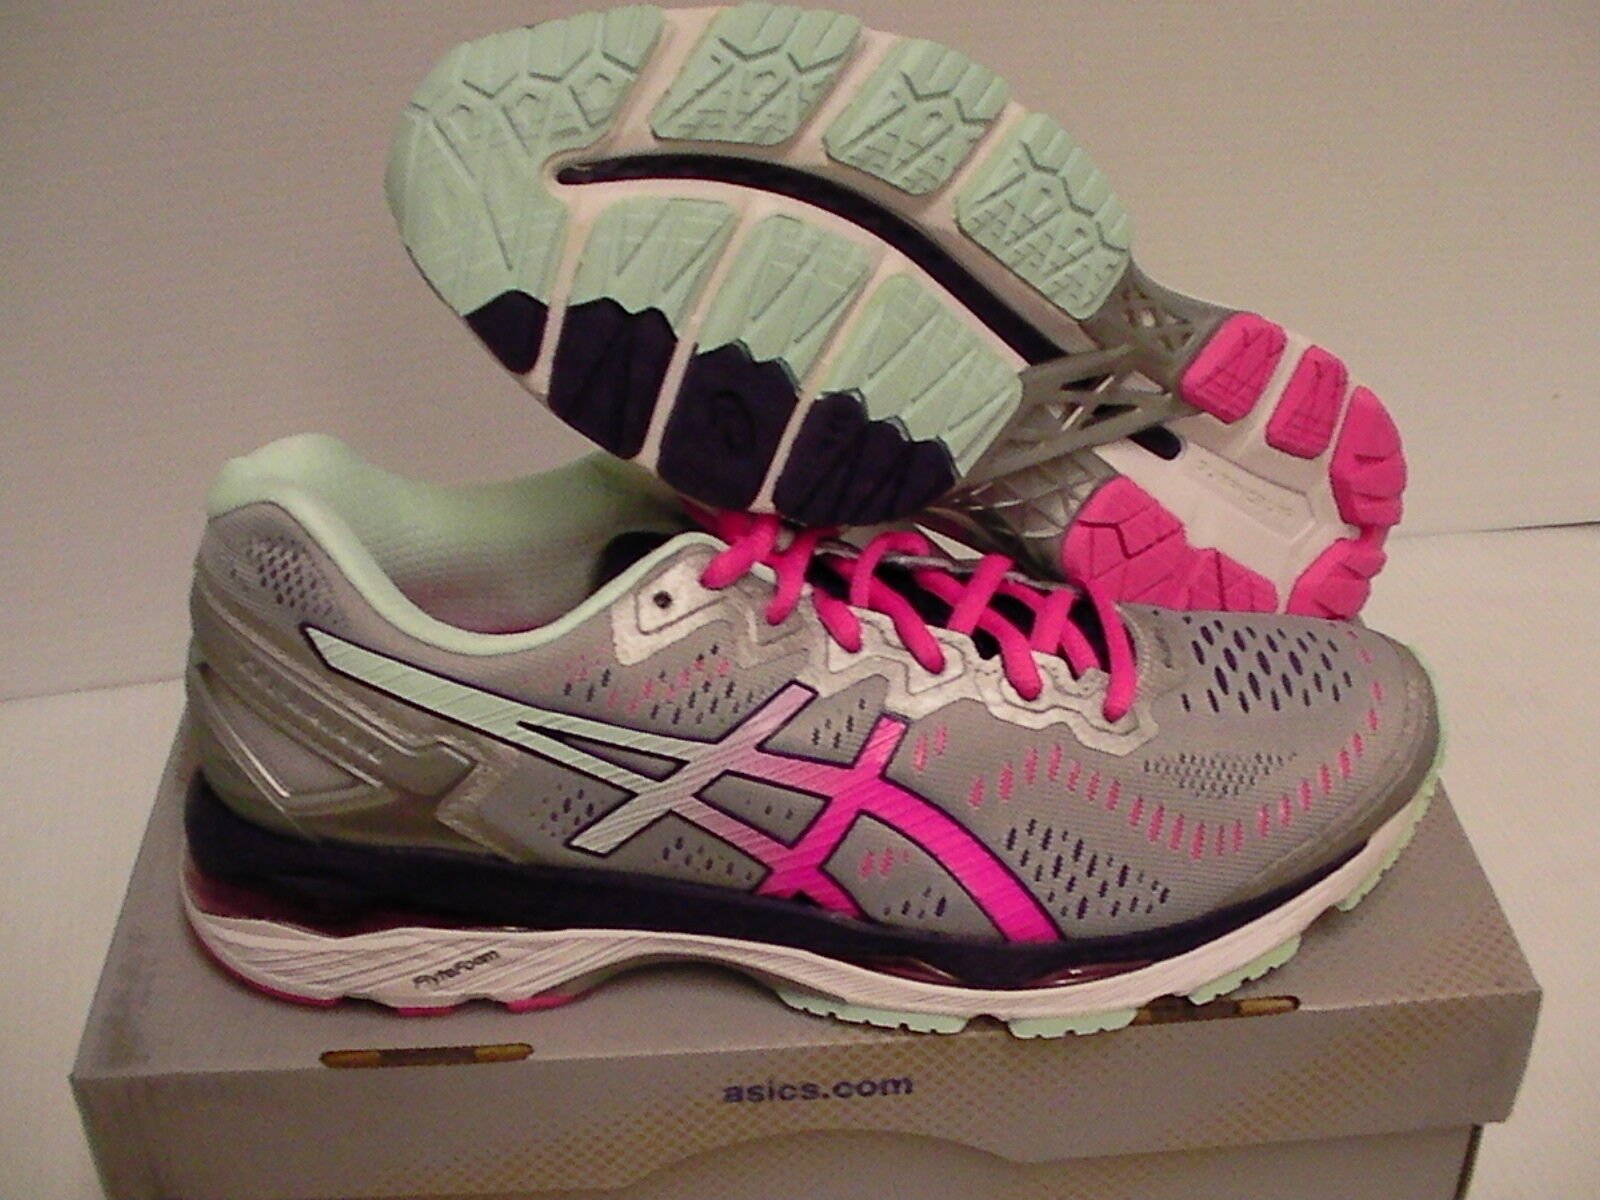 Asics women Gel Kayano 23 shoes Course pink silver Brille